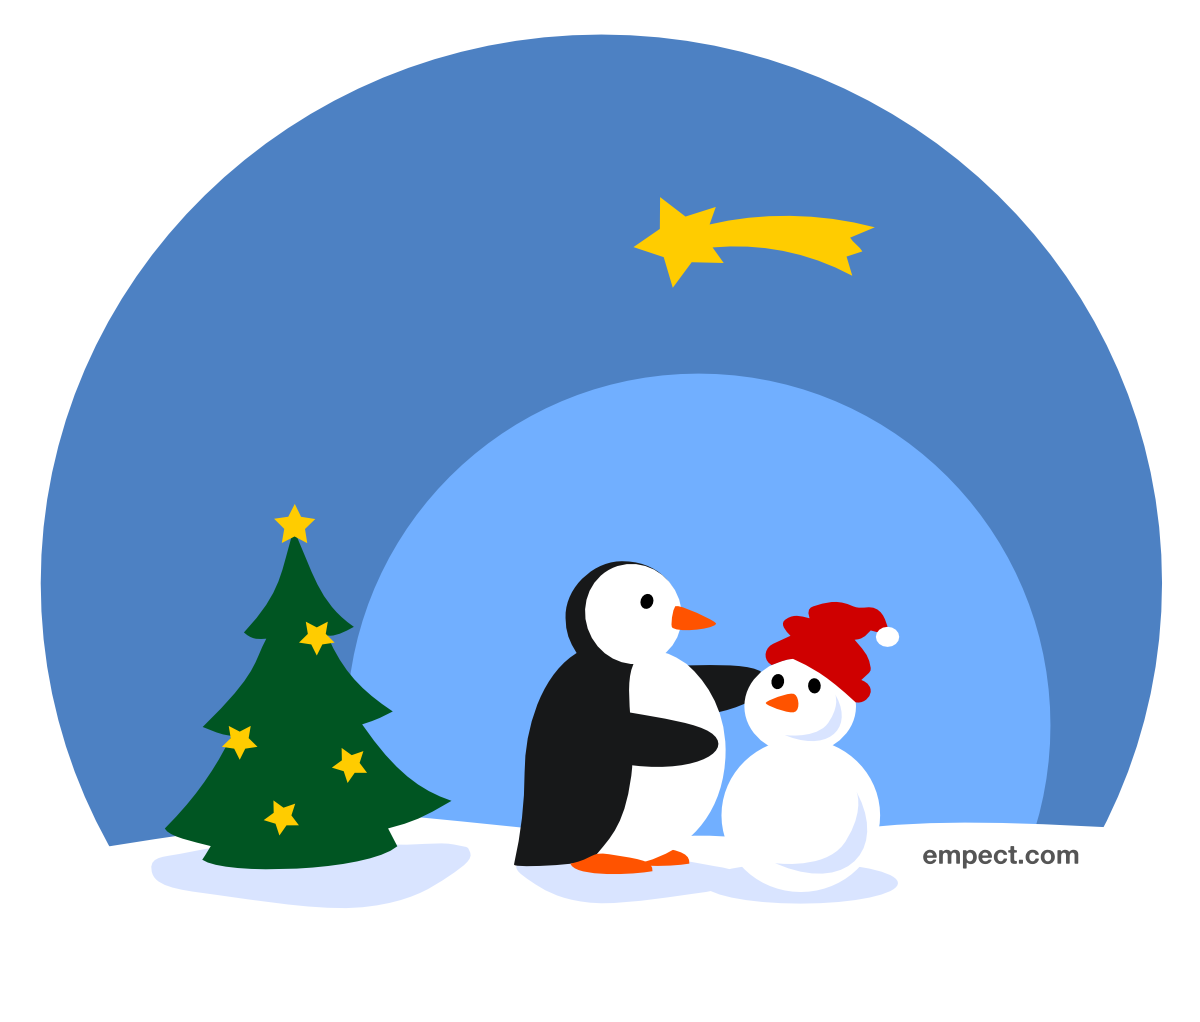 empect_christmas_penguin_narrrow